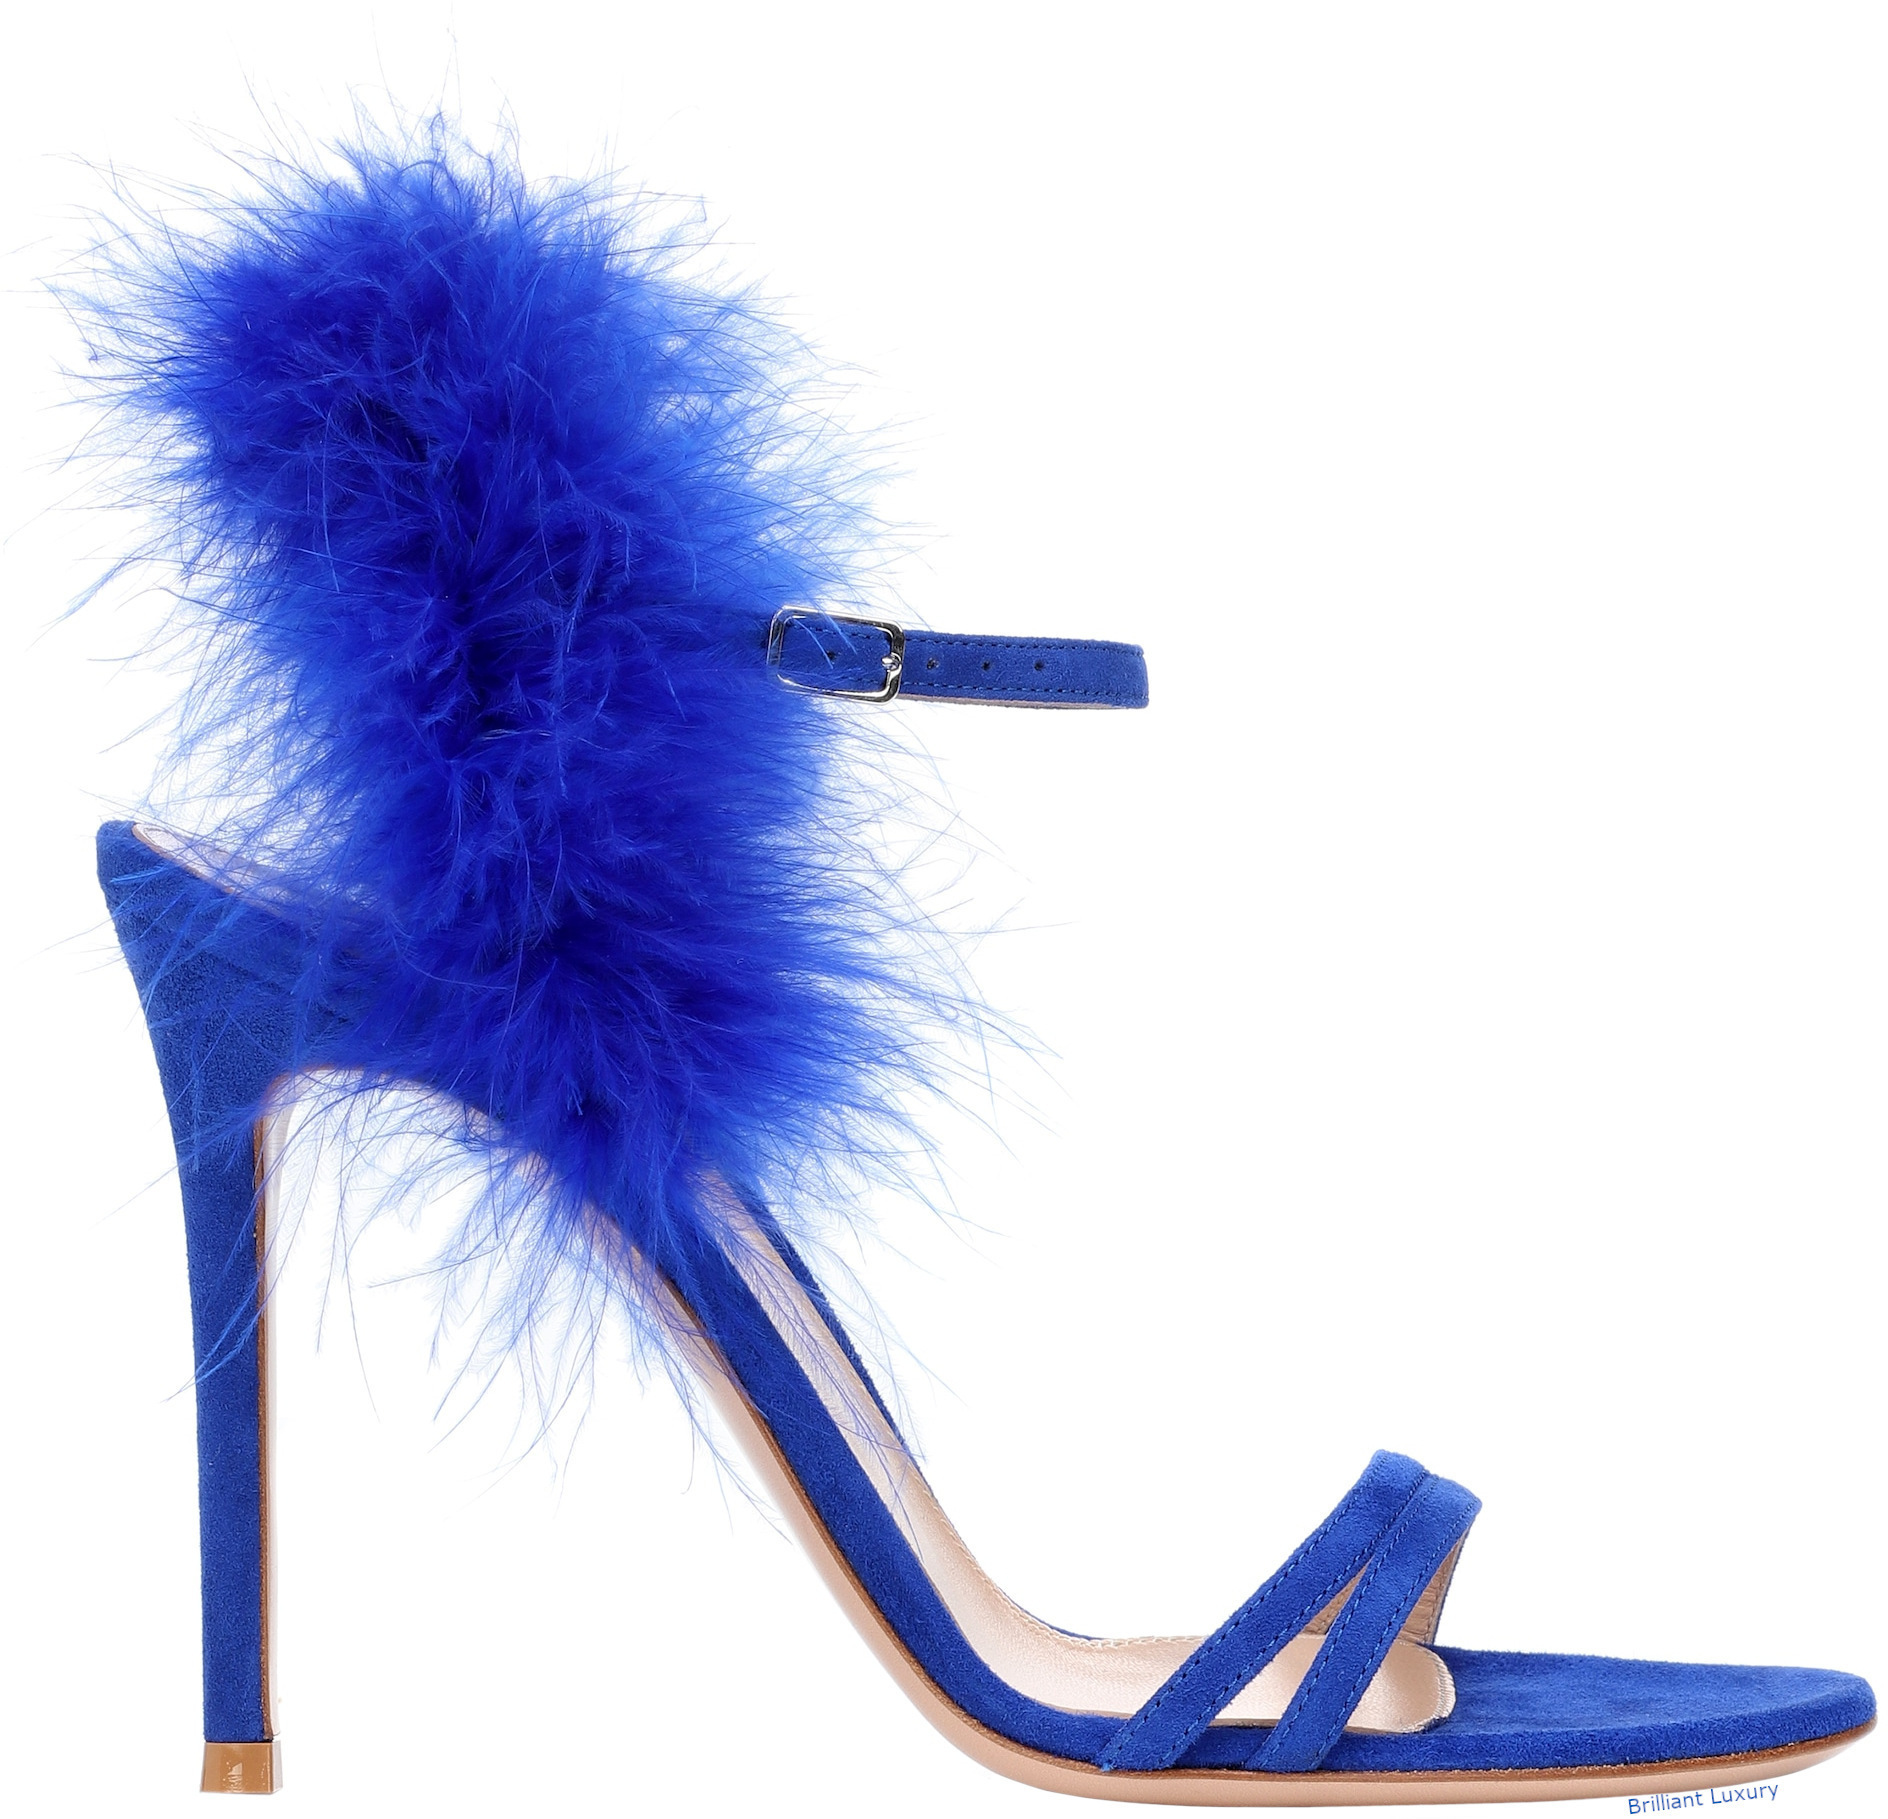 Gianvito Rossi Thais feather-trimmed suede sandals in Pantone Color Princess Blue